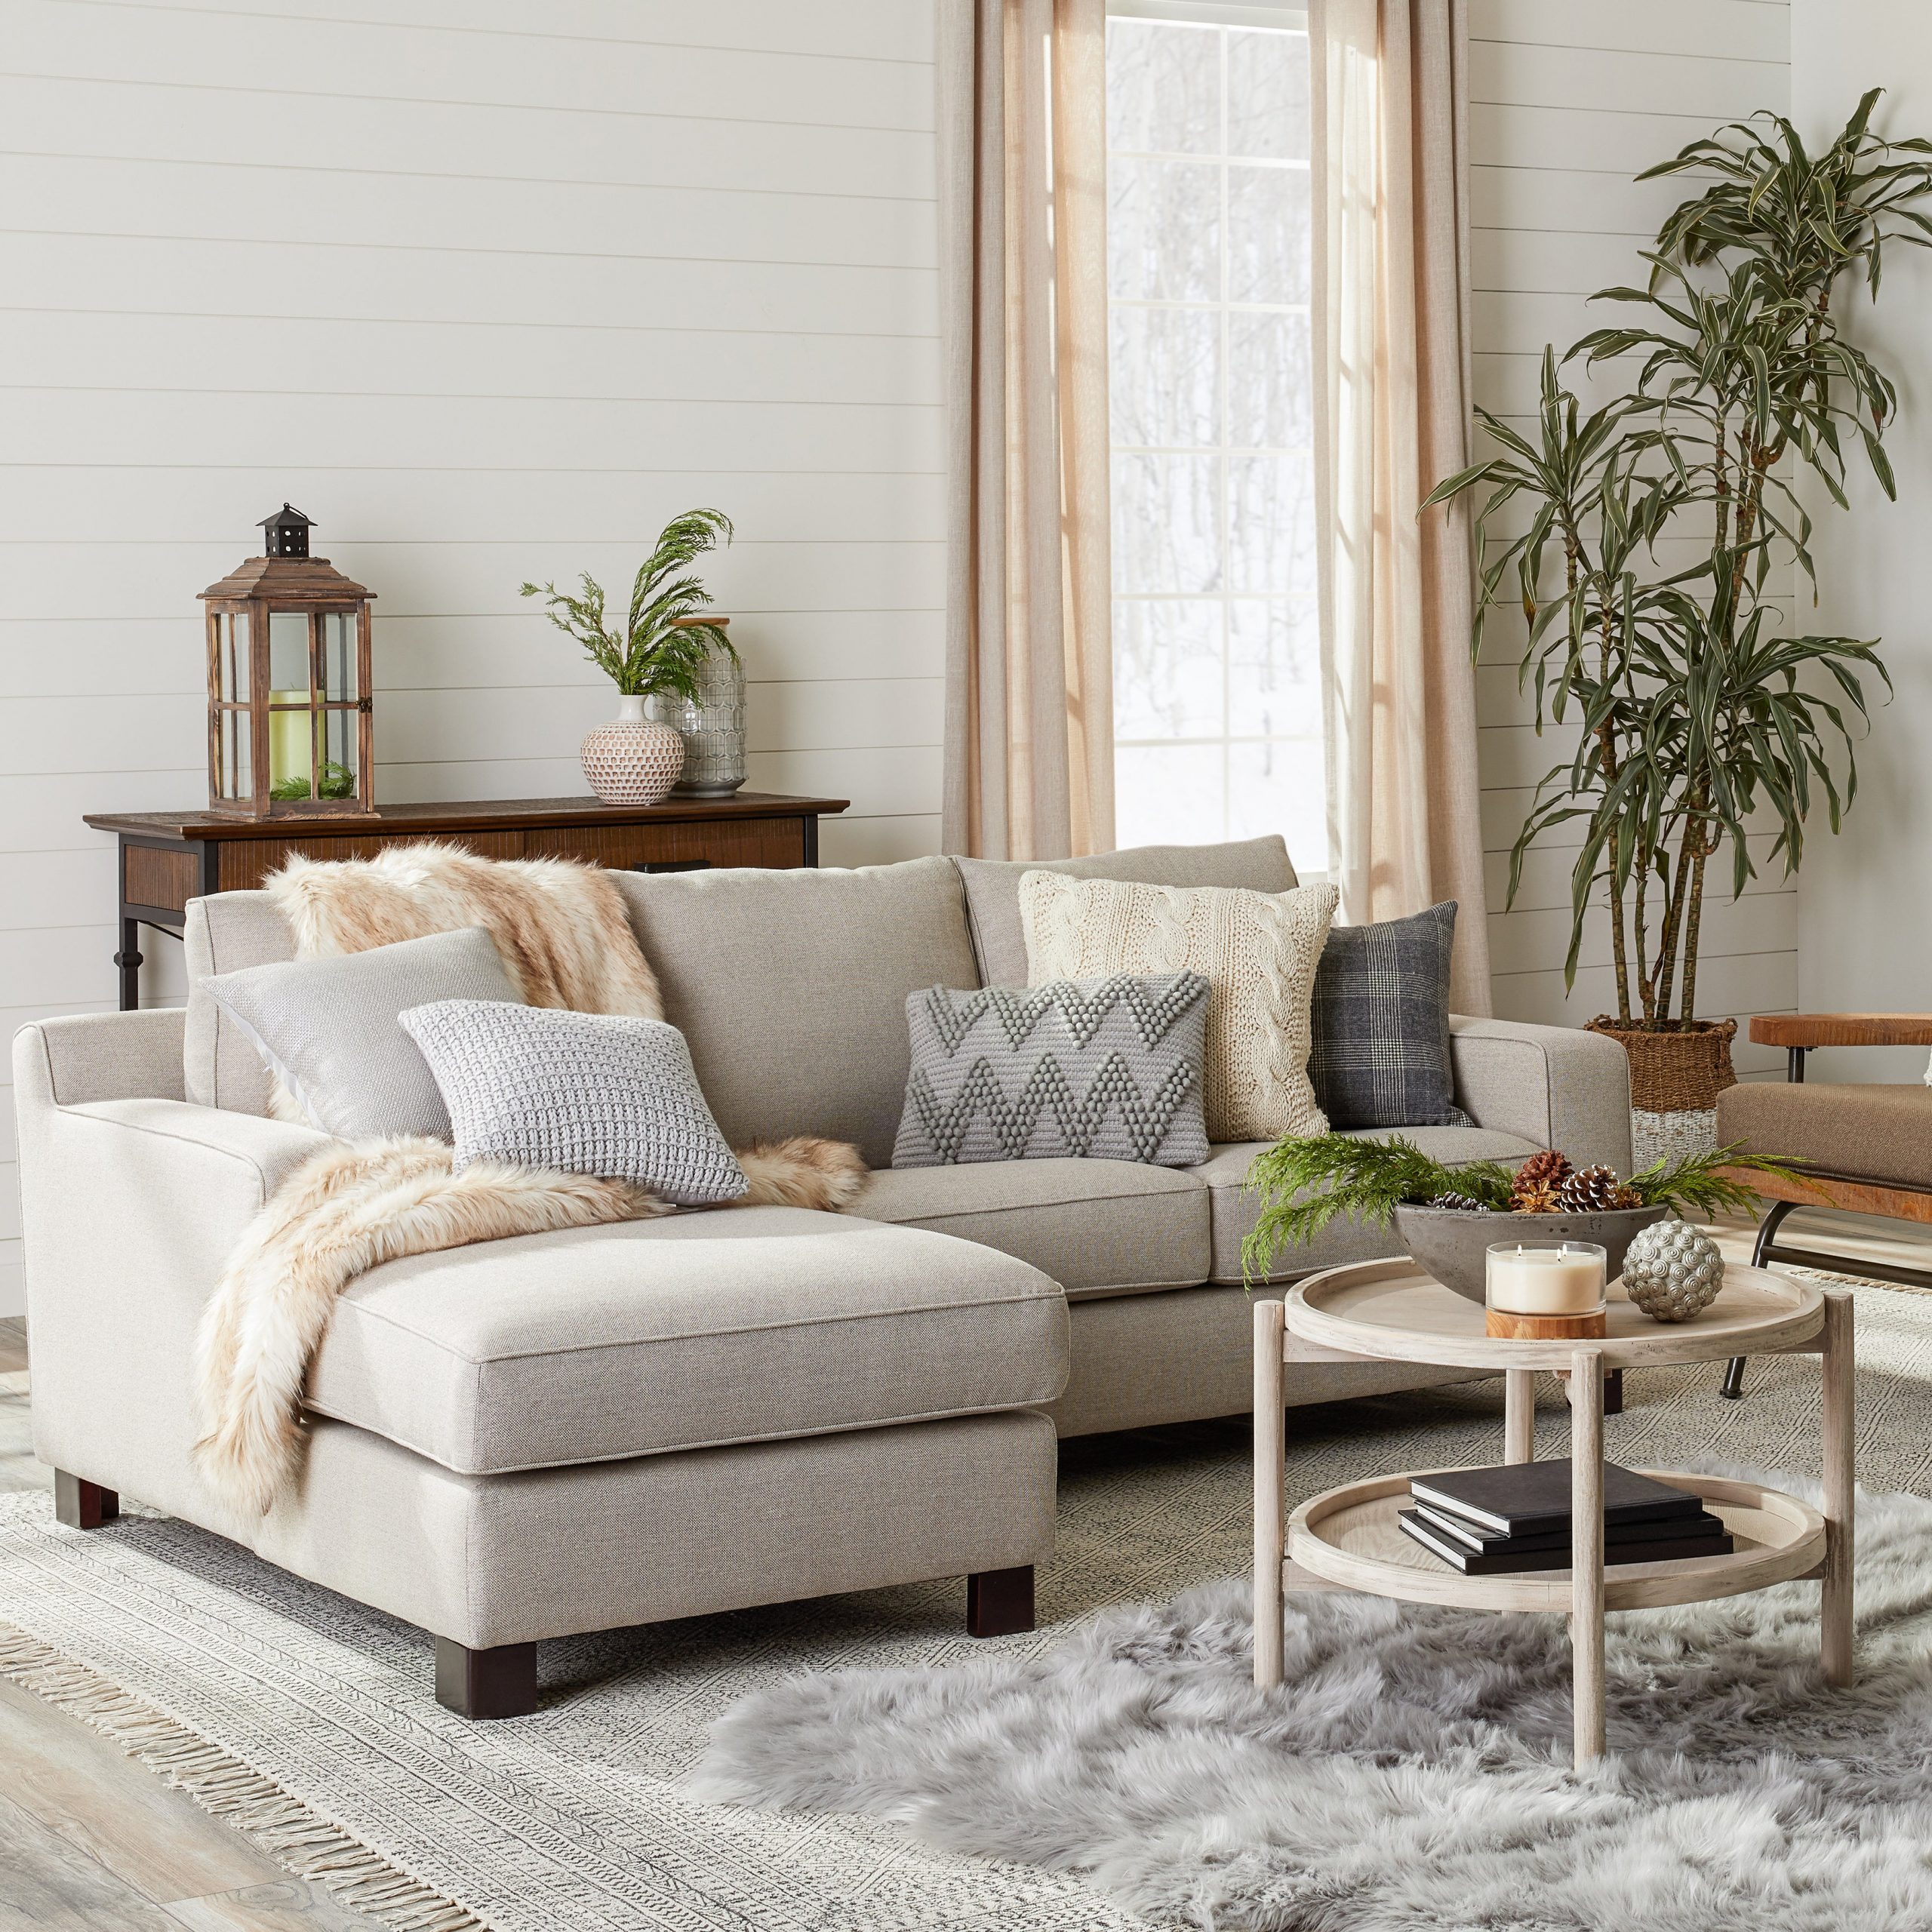 Trendy Gray Tweed Sectional Sofa Dante Sectional Sofa With Chaise Intended For 2Pc Crowningshield Contemporary Chaise Sofas Light Gray (View 11 of 25)